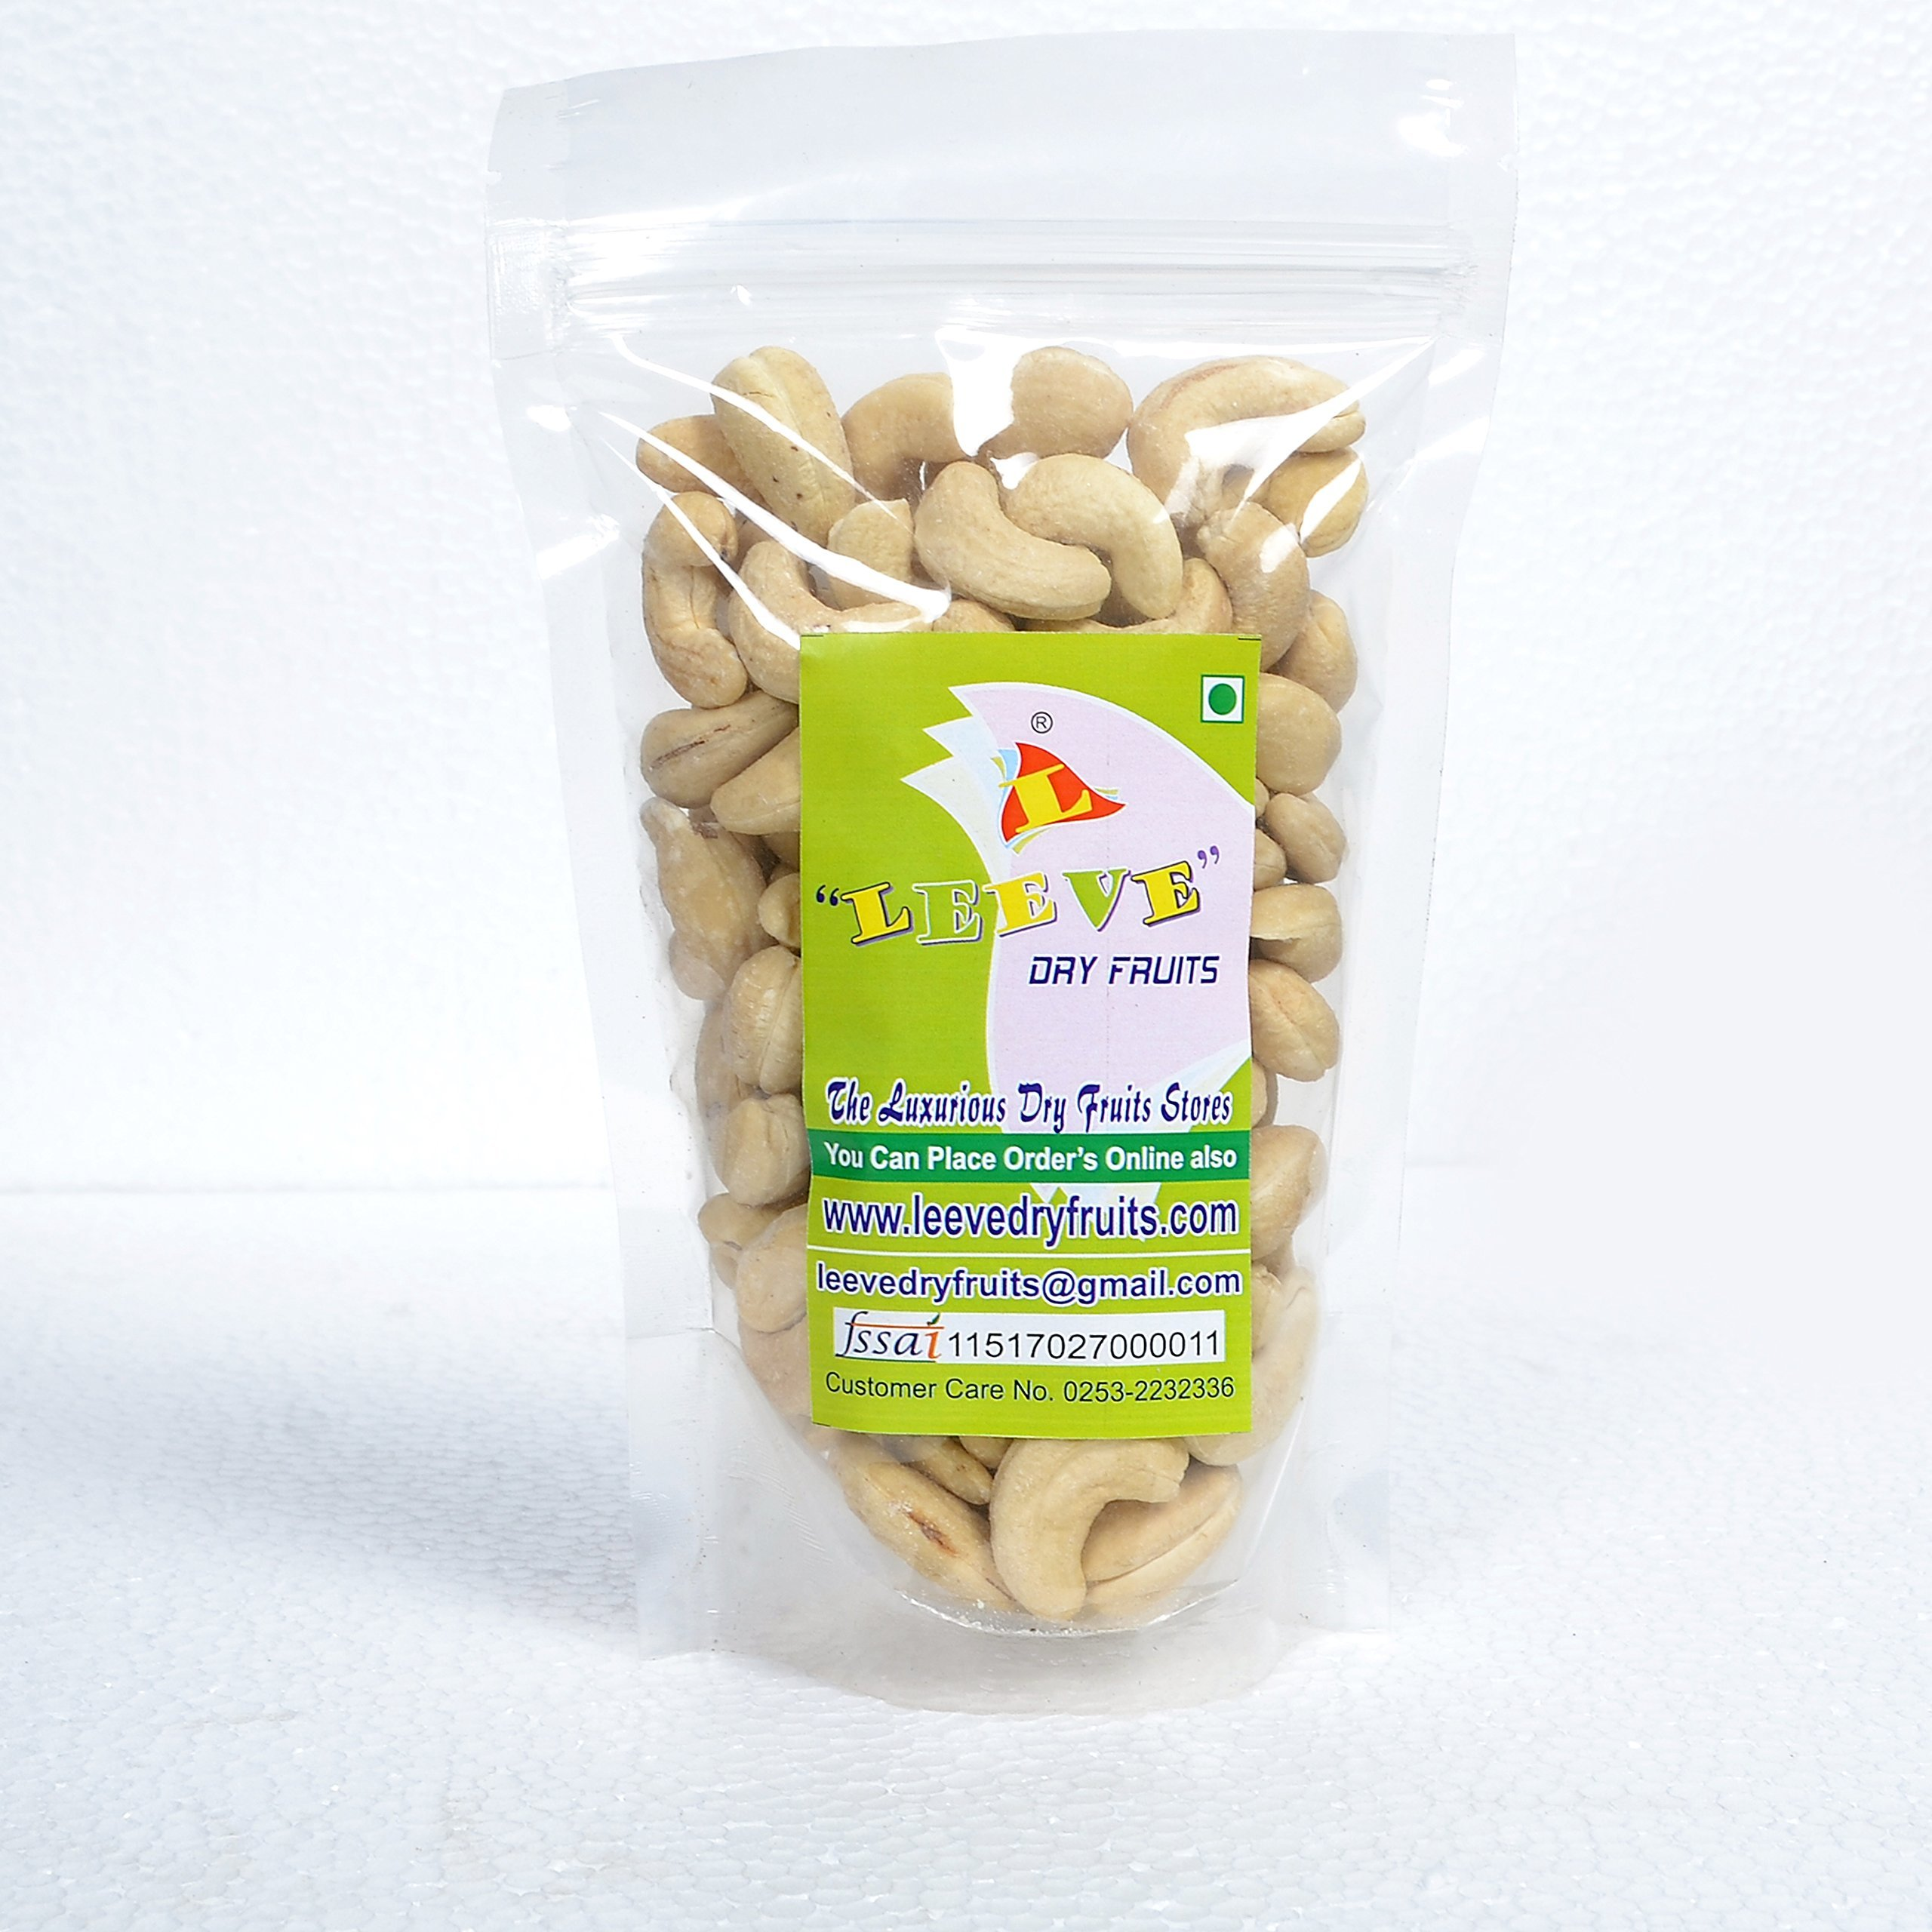 Leeve Dry Fruits Roasted Salted Flavour Cashew Namkeen Kaju - by Leeve Dry Fruits (Image #1)